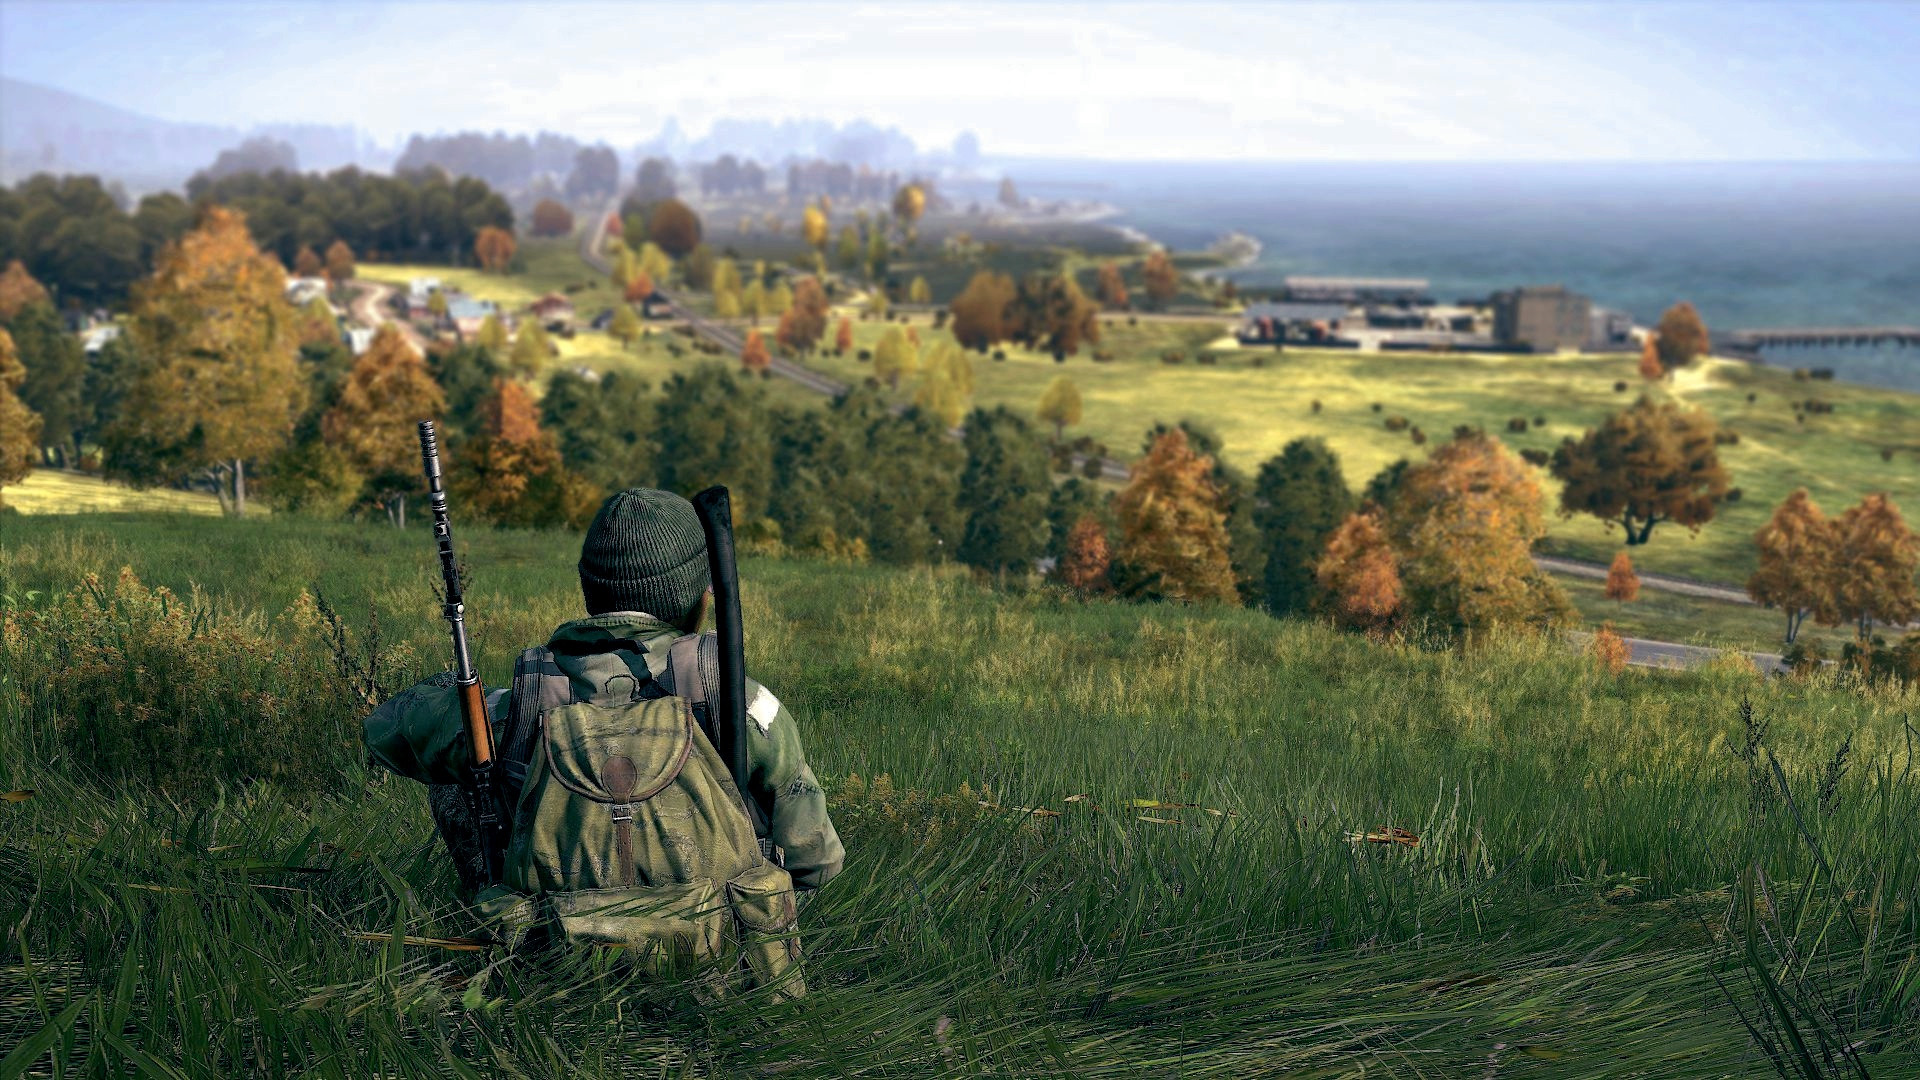 dayz-llegara-xbox-game-preview-2018-frikigamers.com